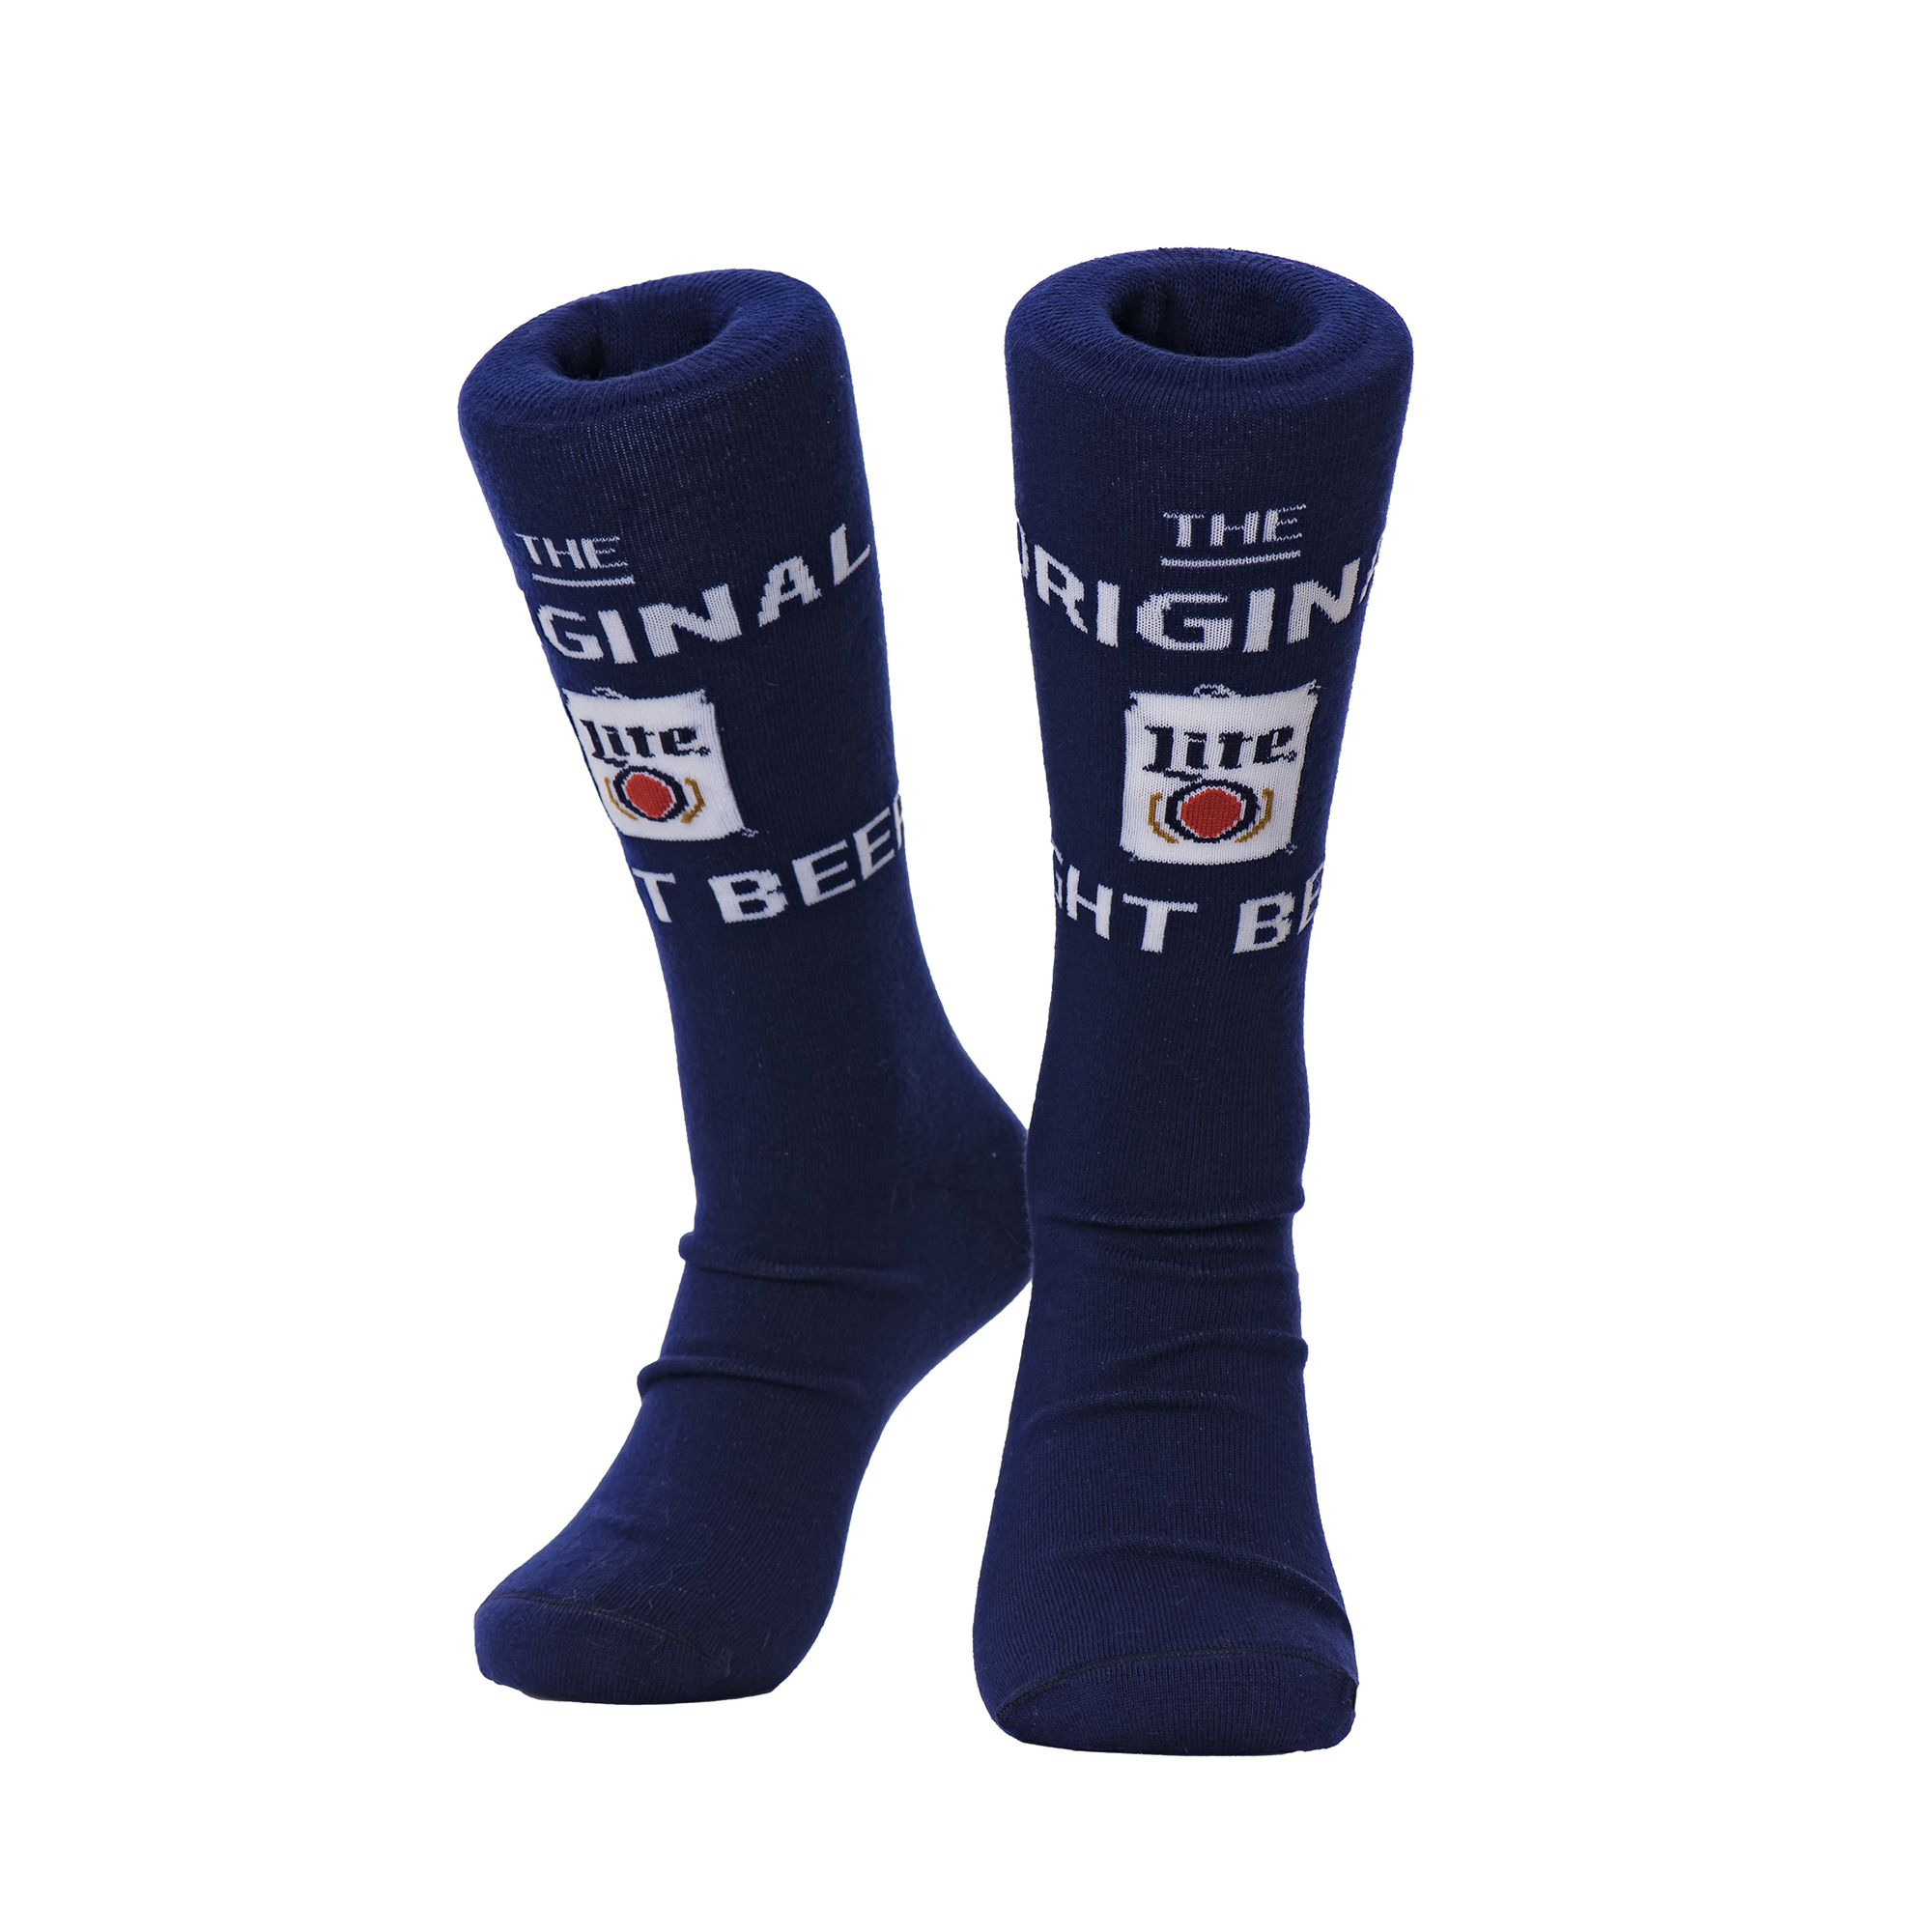 MILLER LITE THE ORIGINAL SOCK